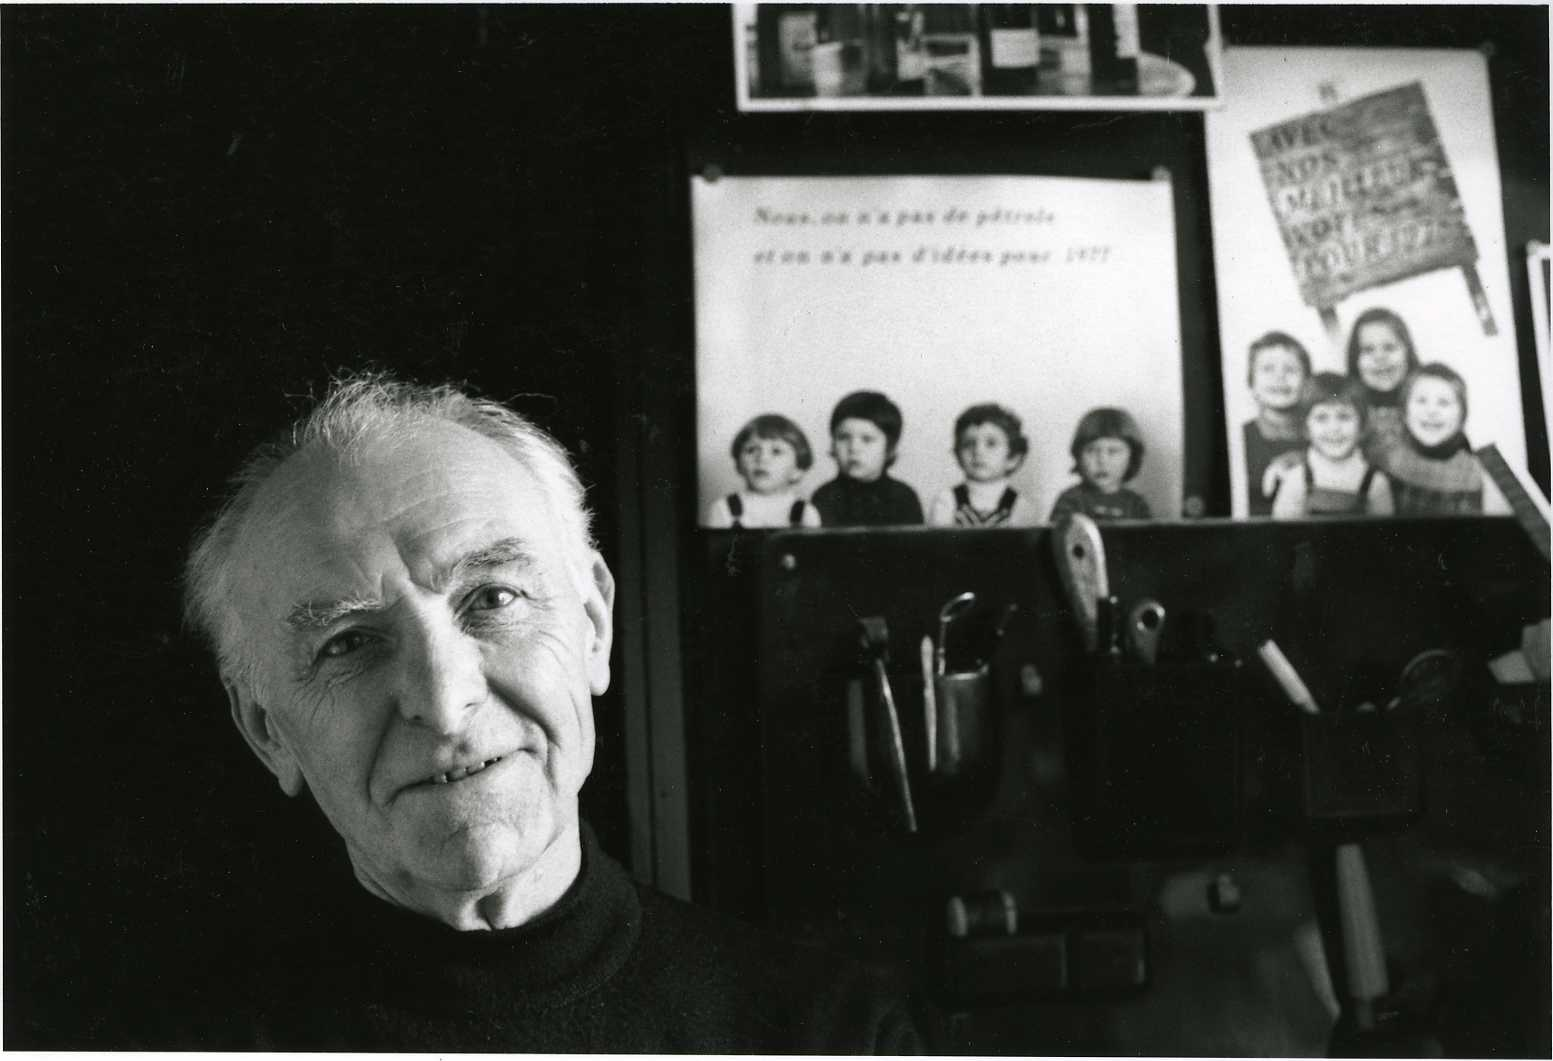 Robert Doisneau in his studio in Montrouge 1992 - Icon Photography School